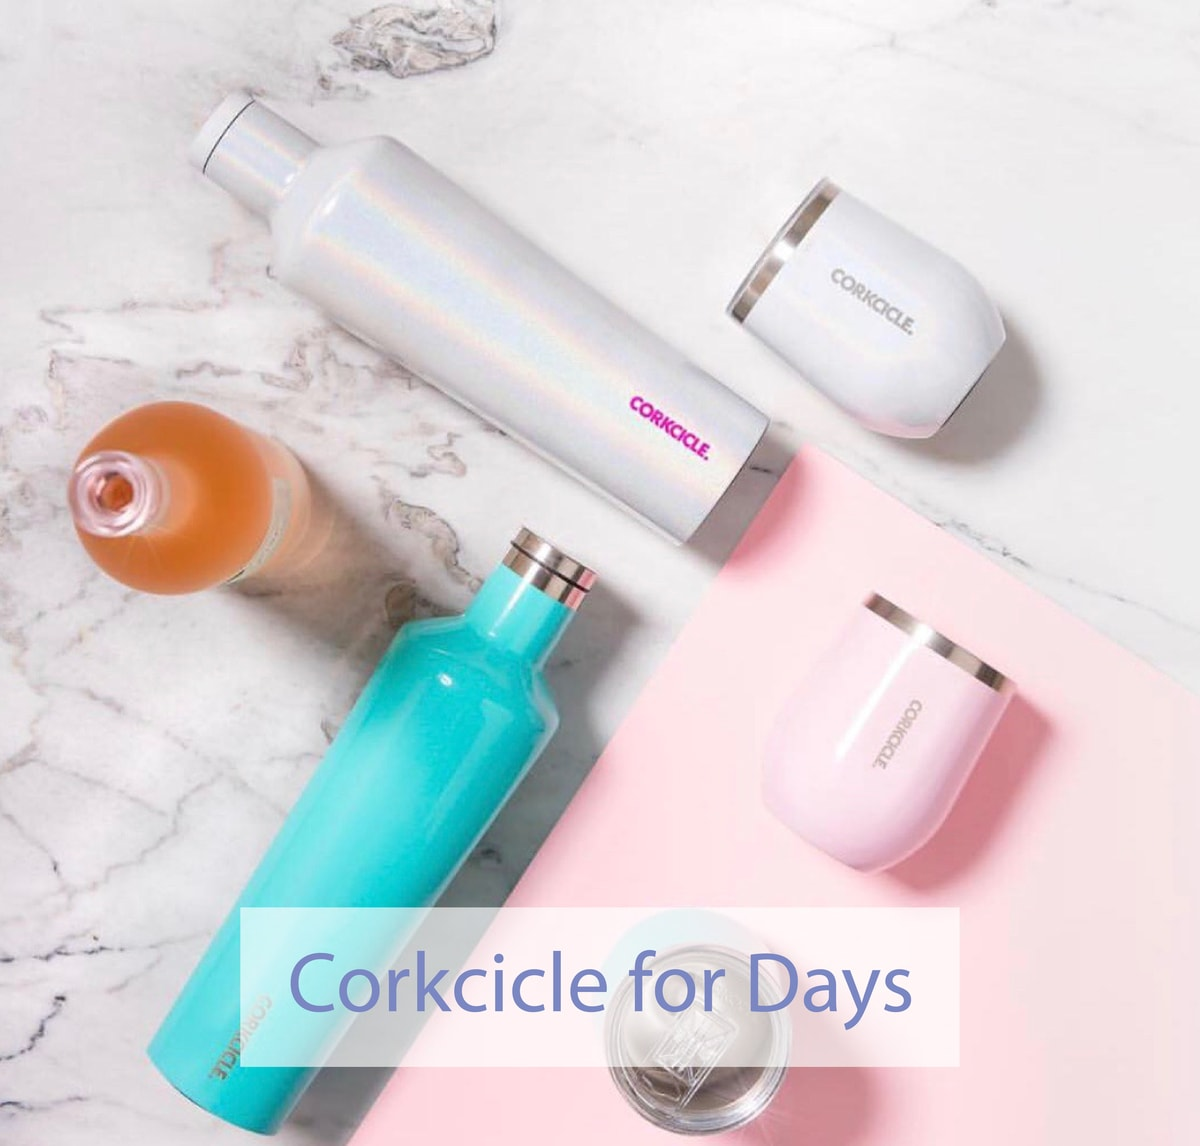 Corkcicle for Days